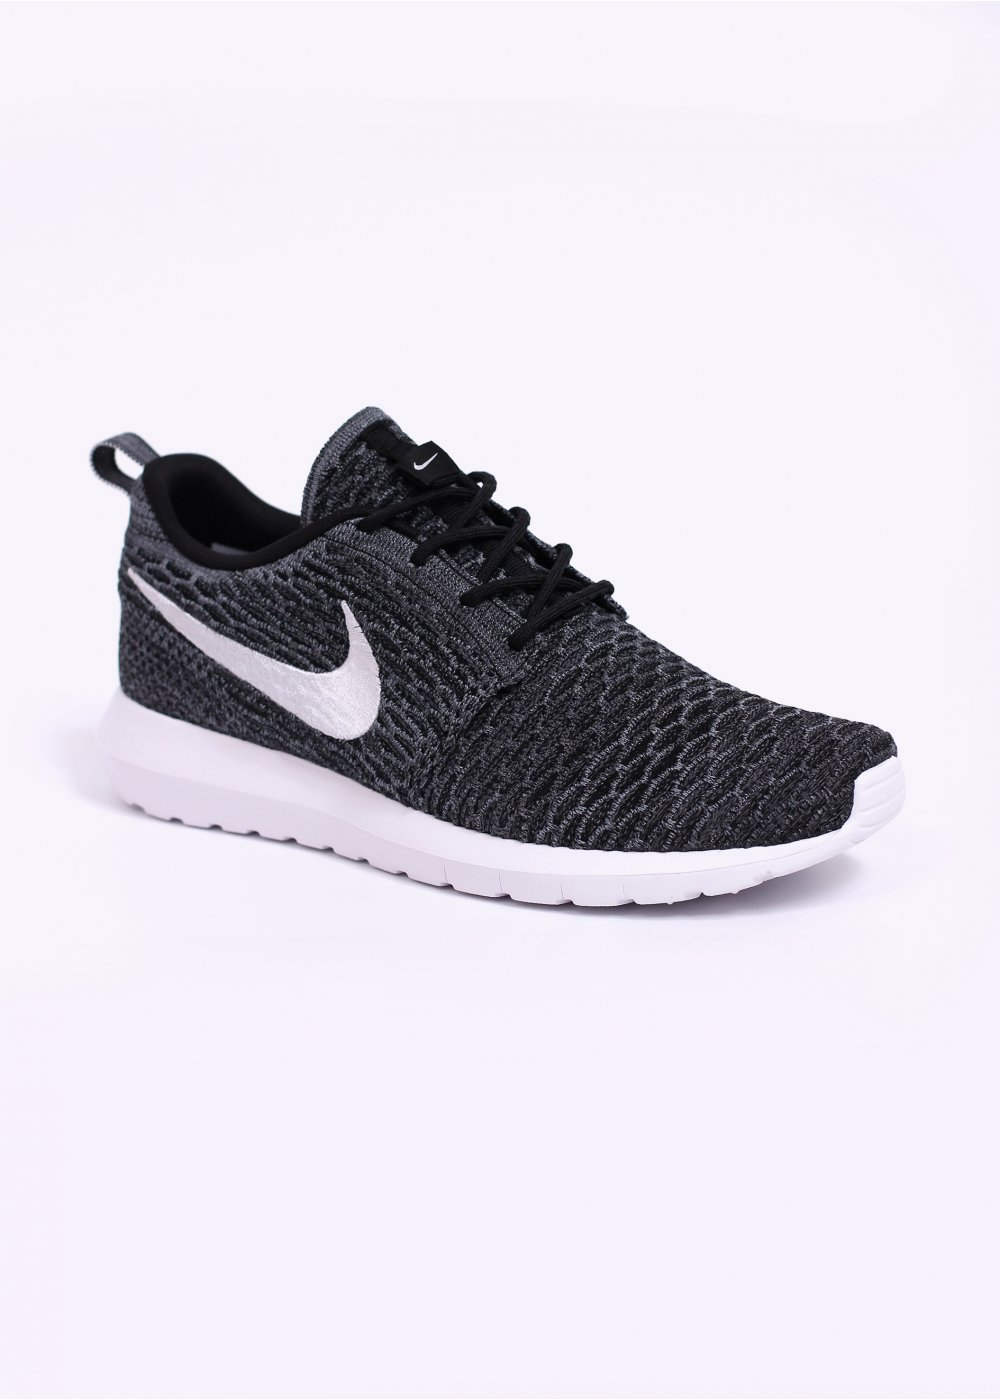 nike flyknit roshe run trainers black white dark grey. Black Bedroom Furniture Sets. Home Design Ideas